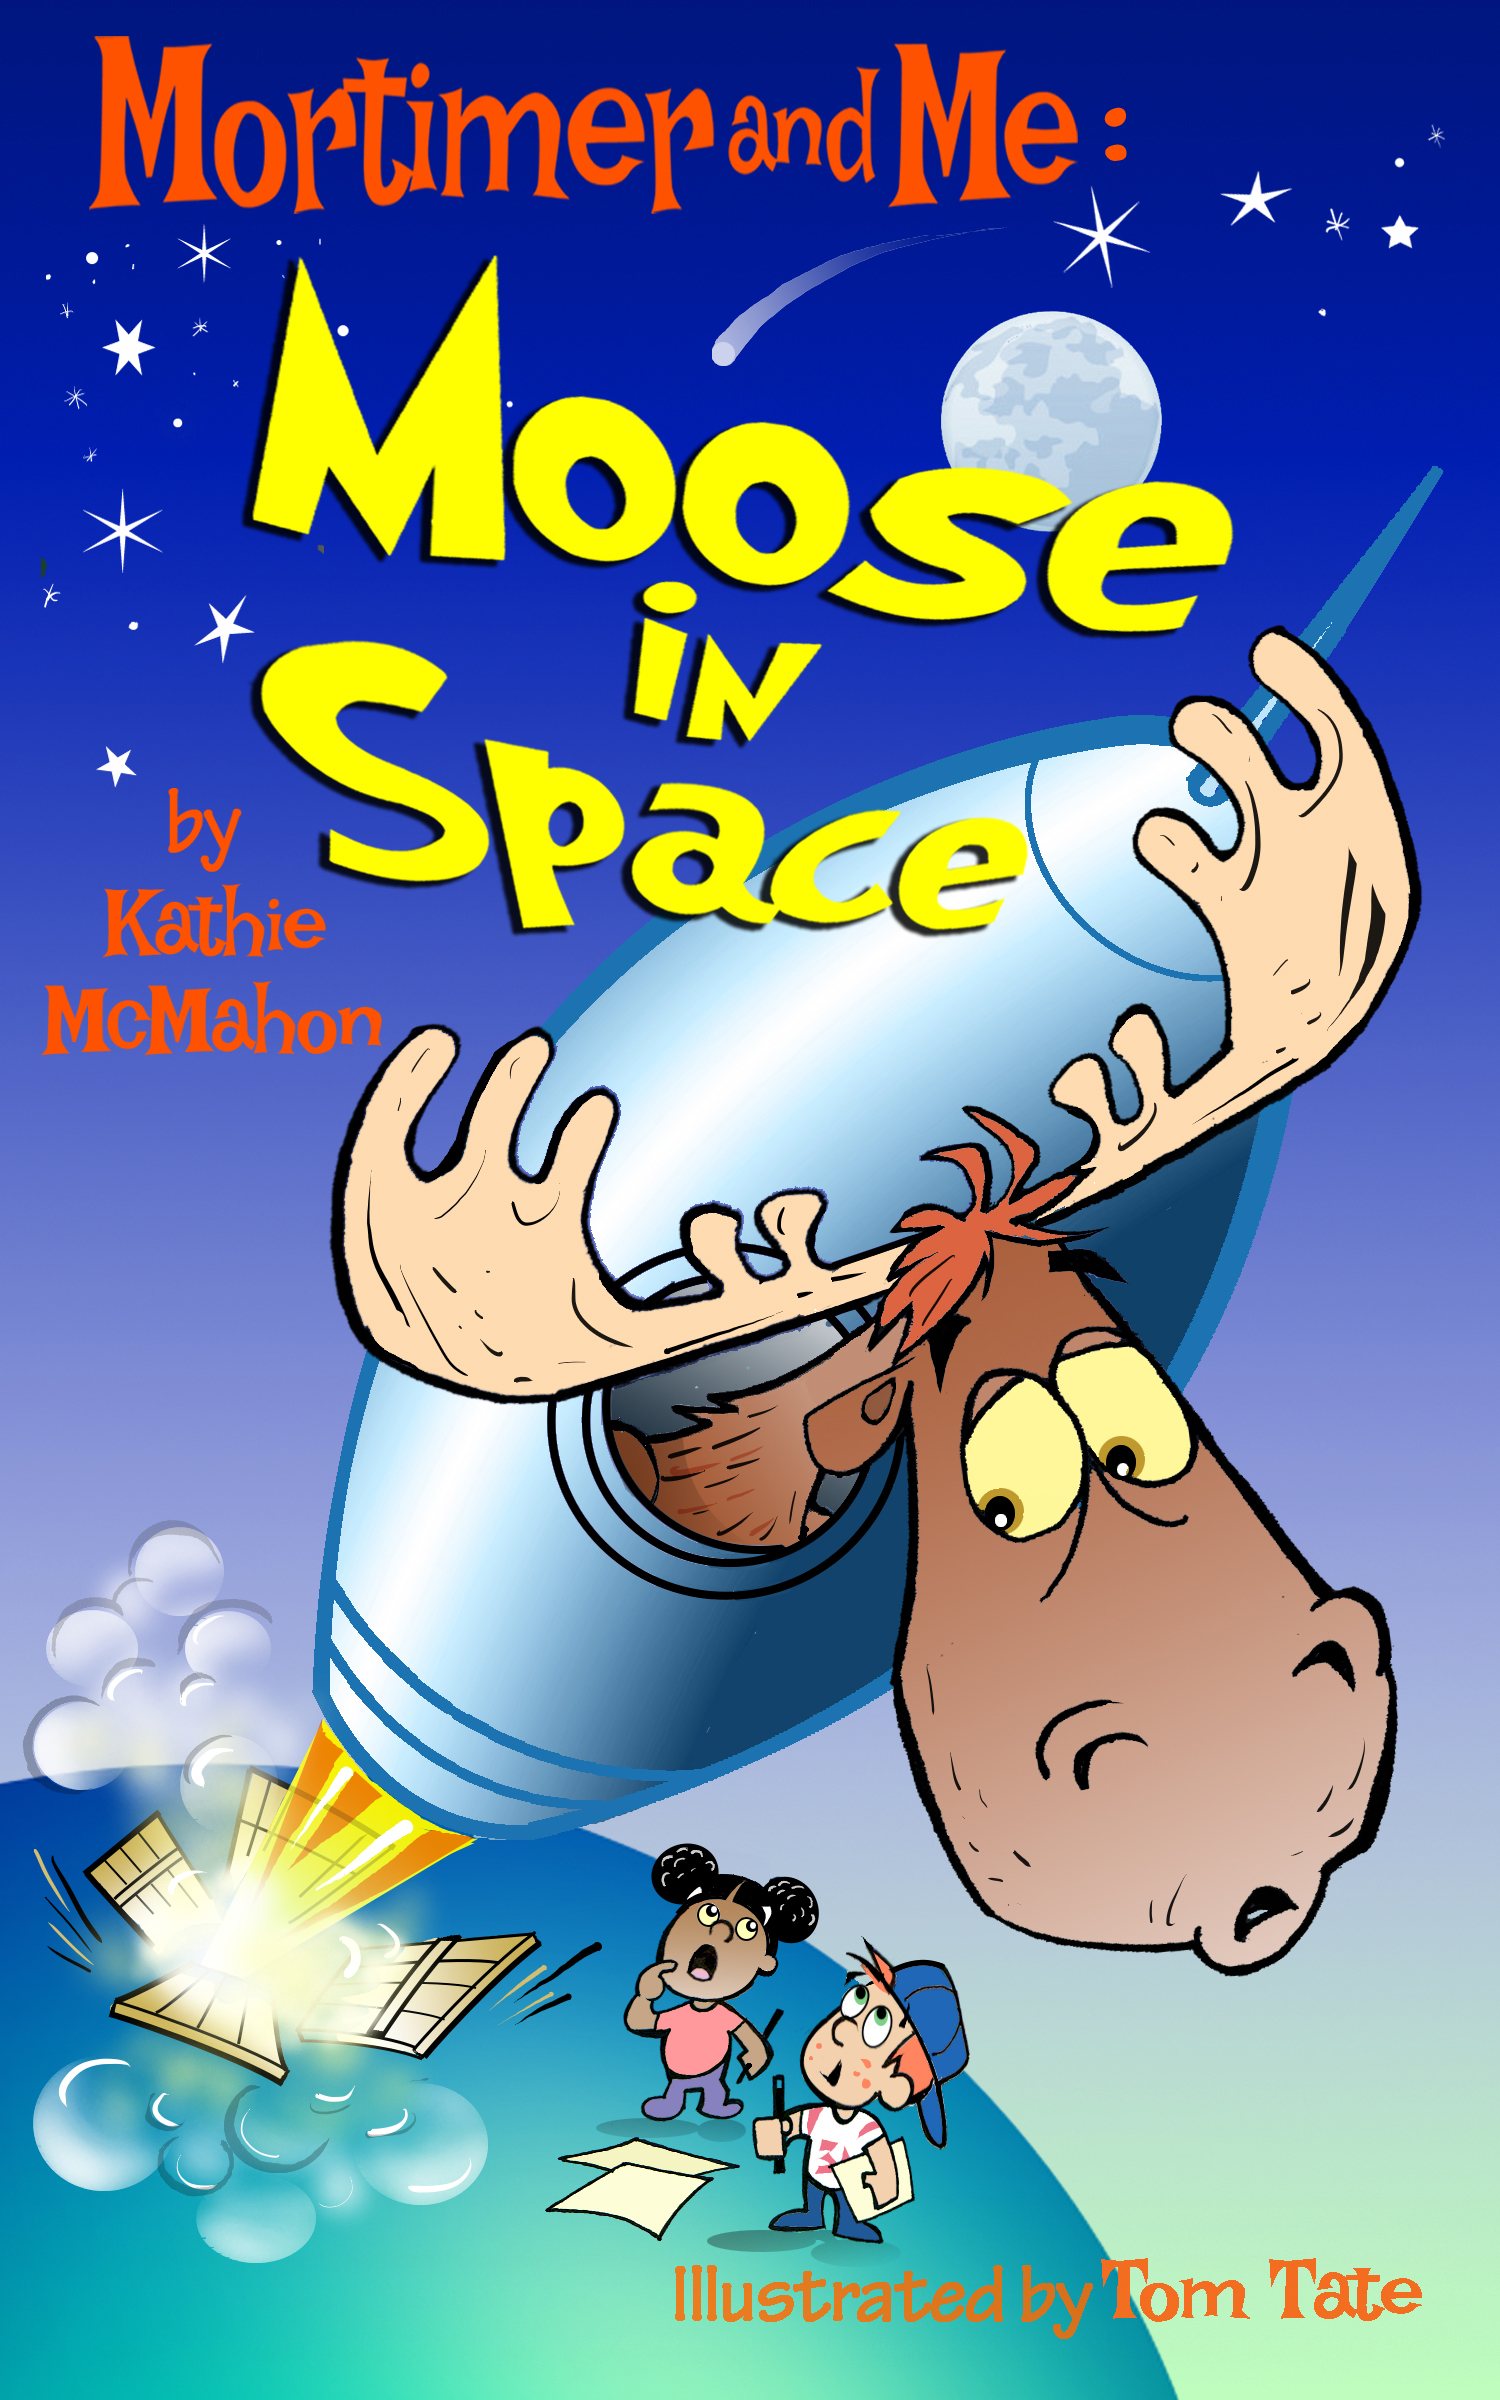 Mortimer and Me: Moose In Space Author: Kathie McMahon Illustrator: Tom Tate Publisher Name: Pearl White Books Date of Publication: April 30, 2021